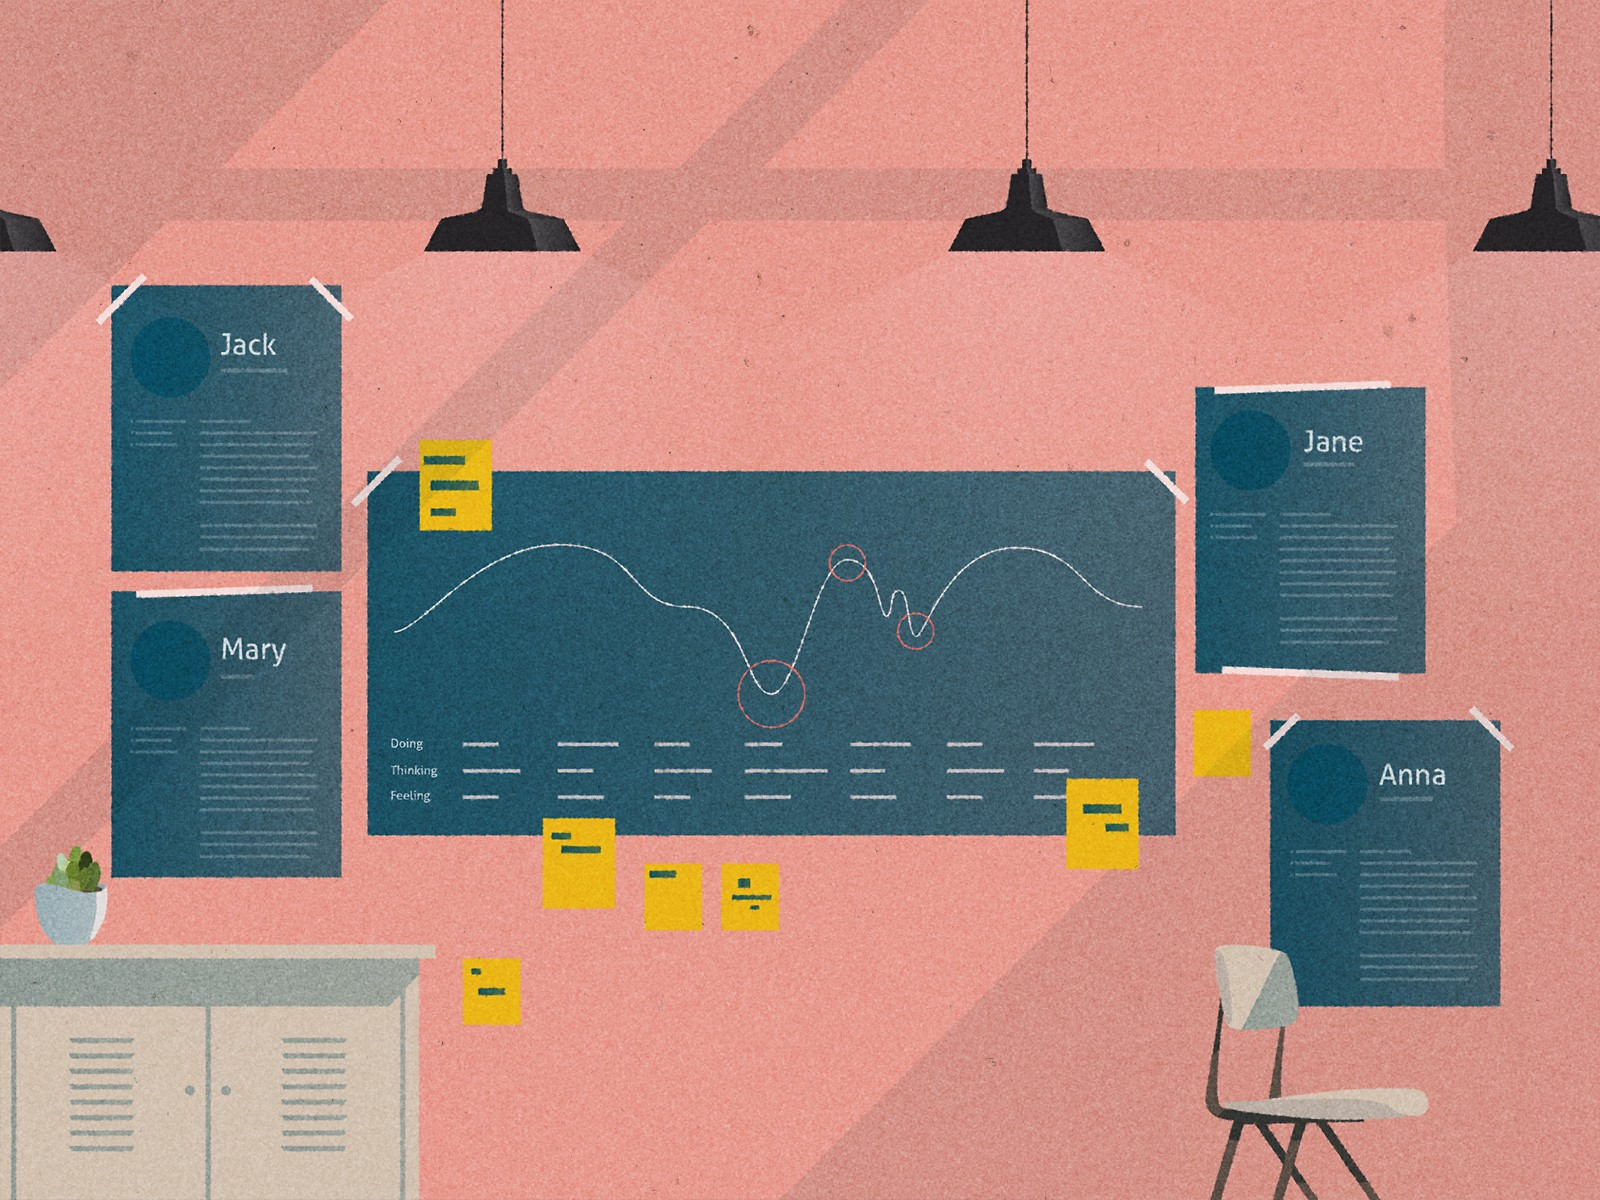 Get the Most Out of User Research